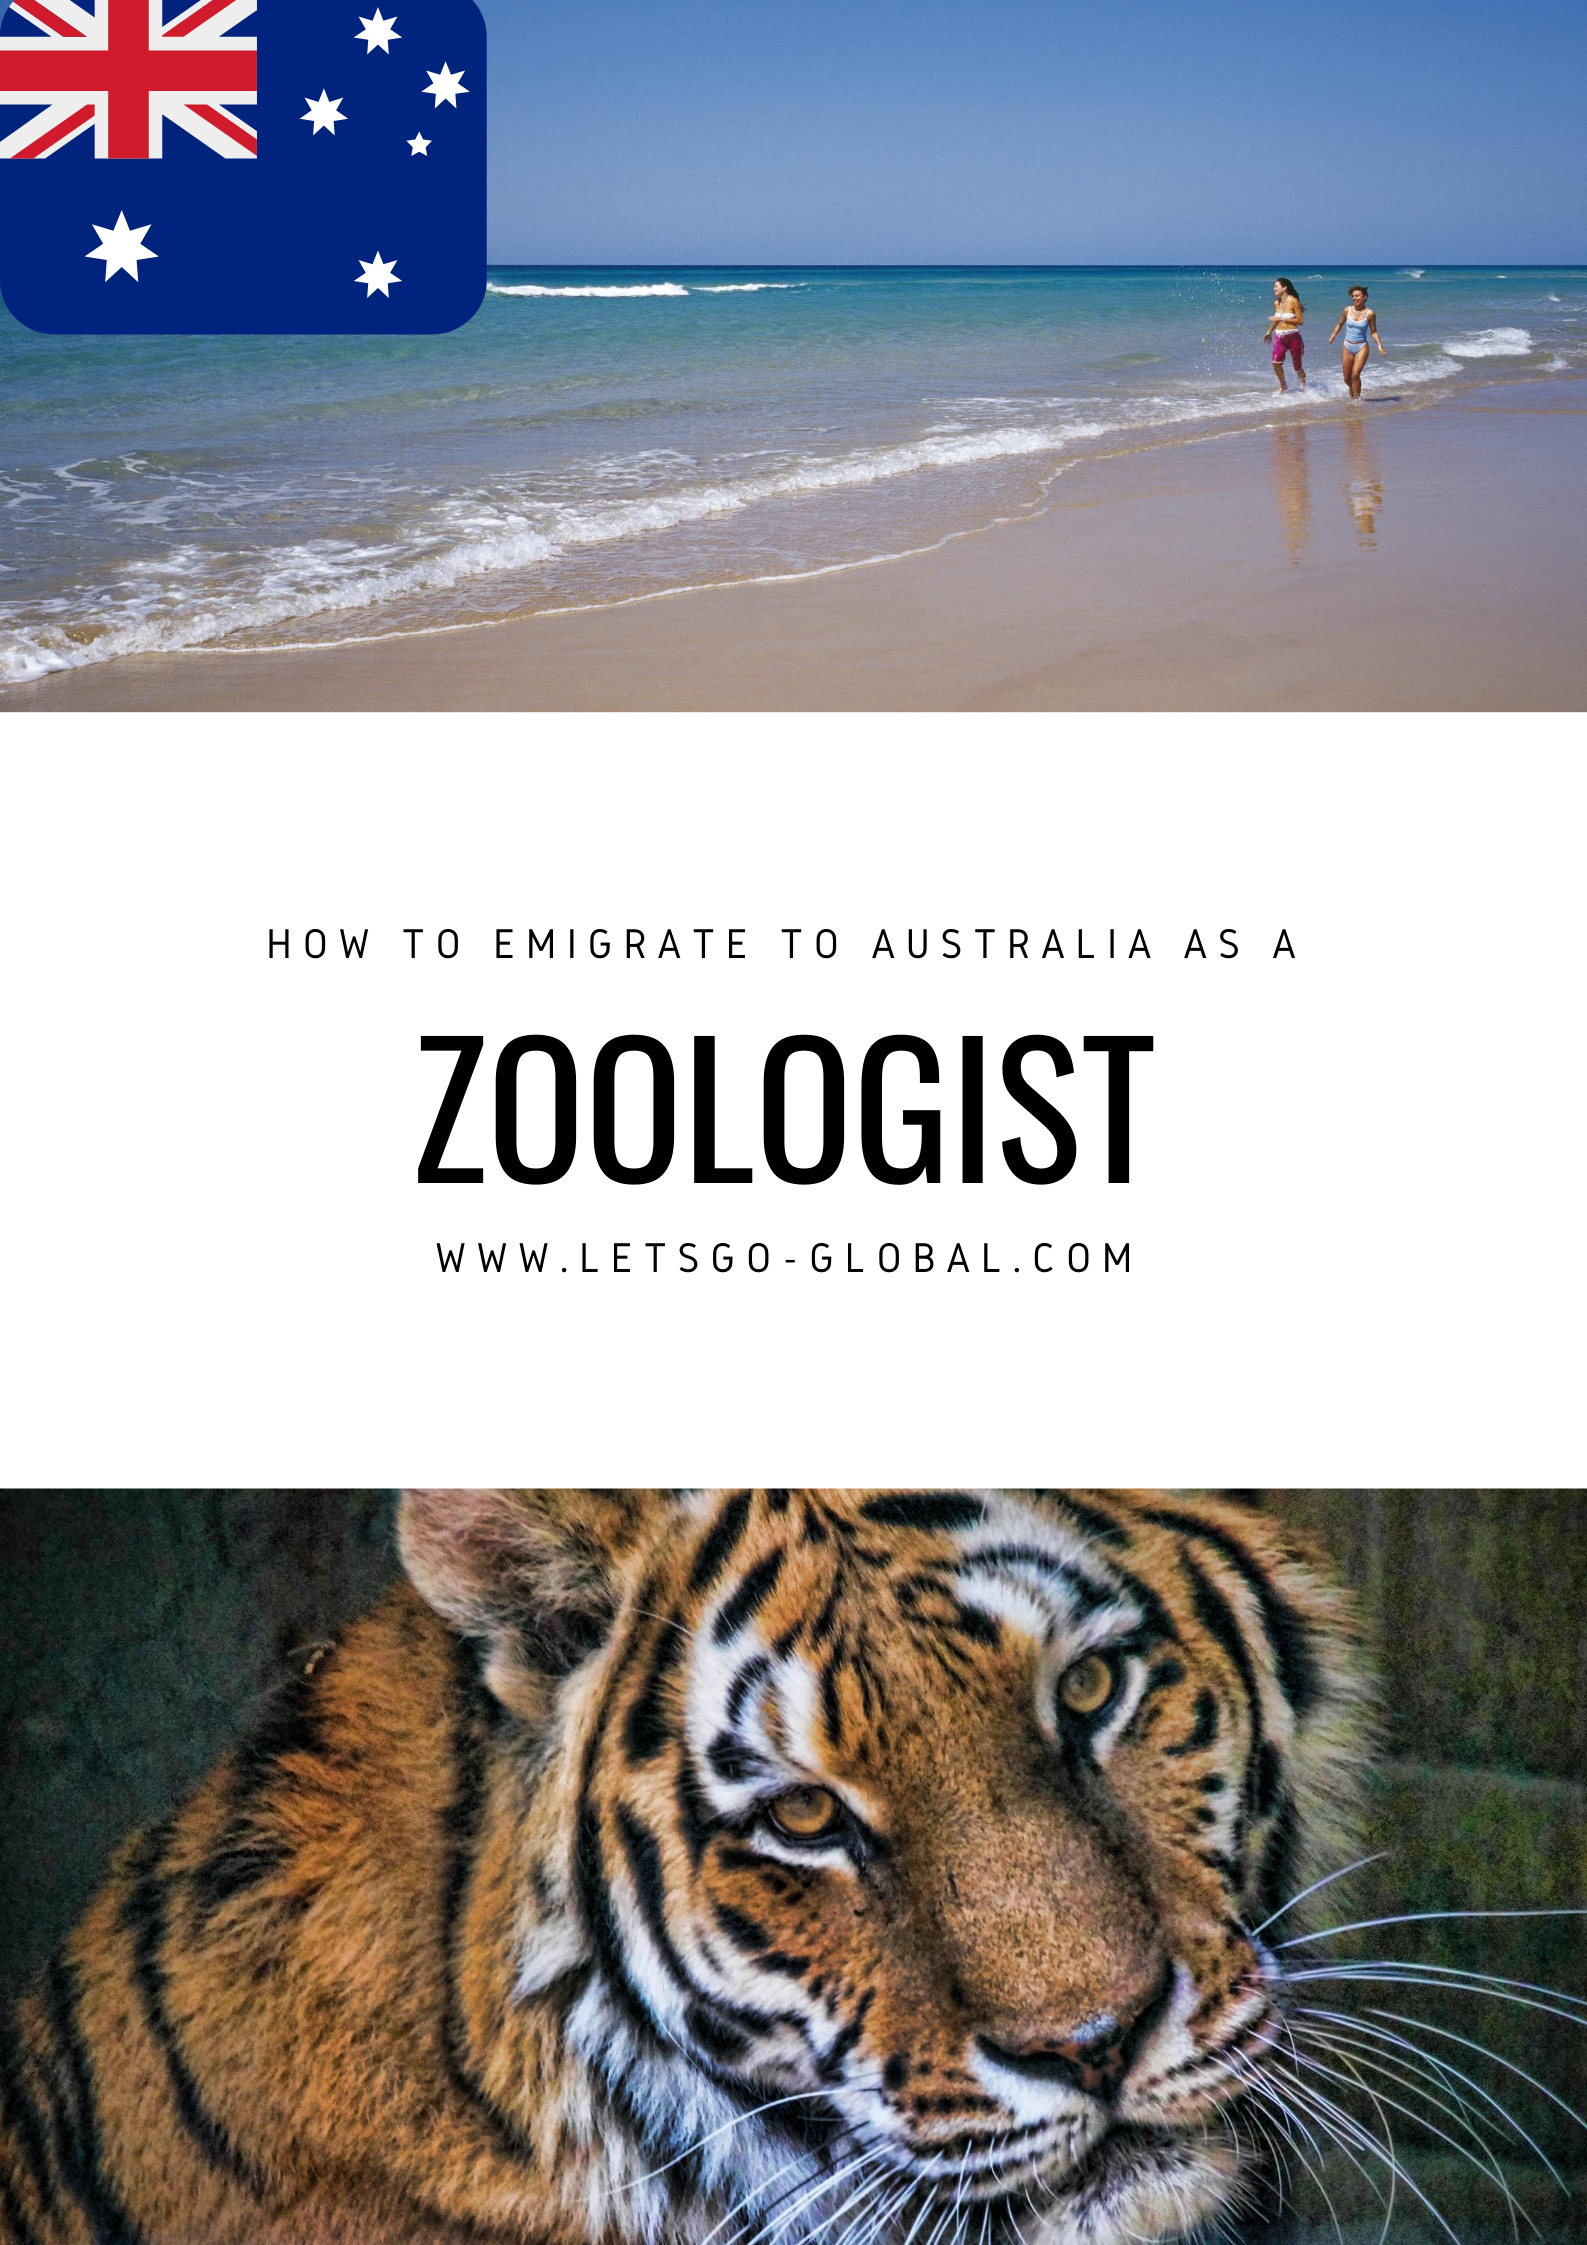 Migrate to Australia as a Zoologist